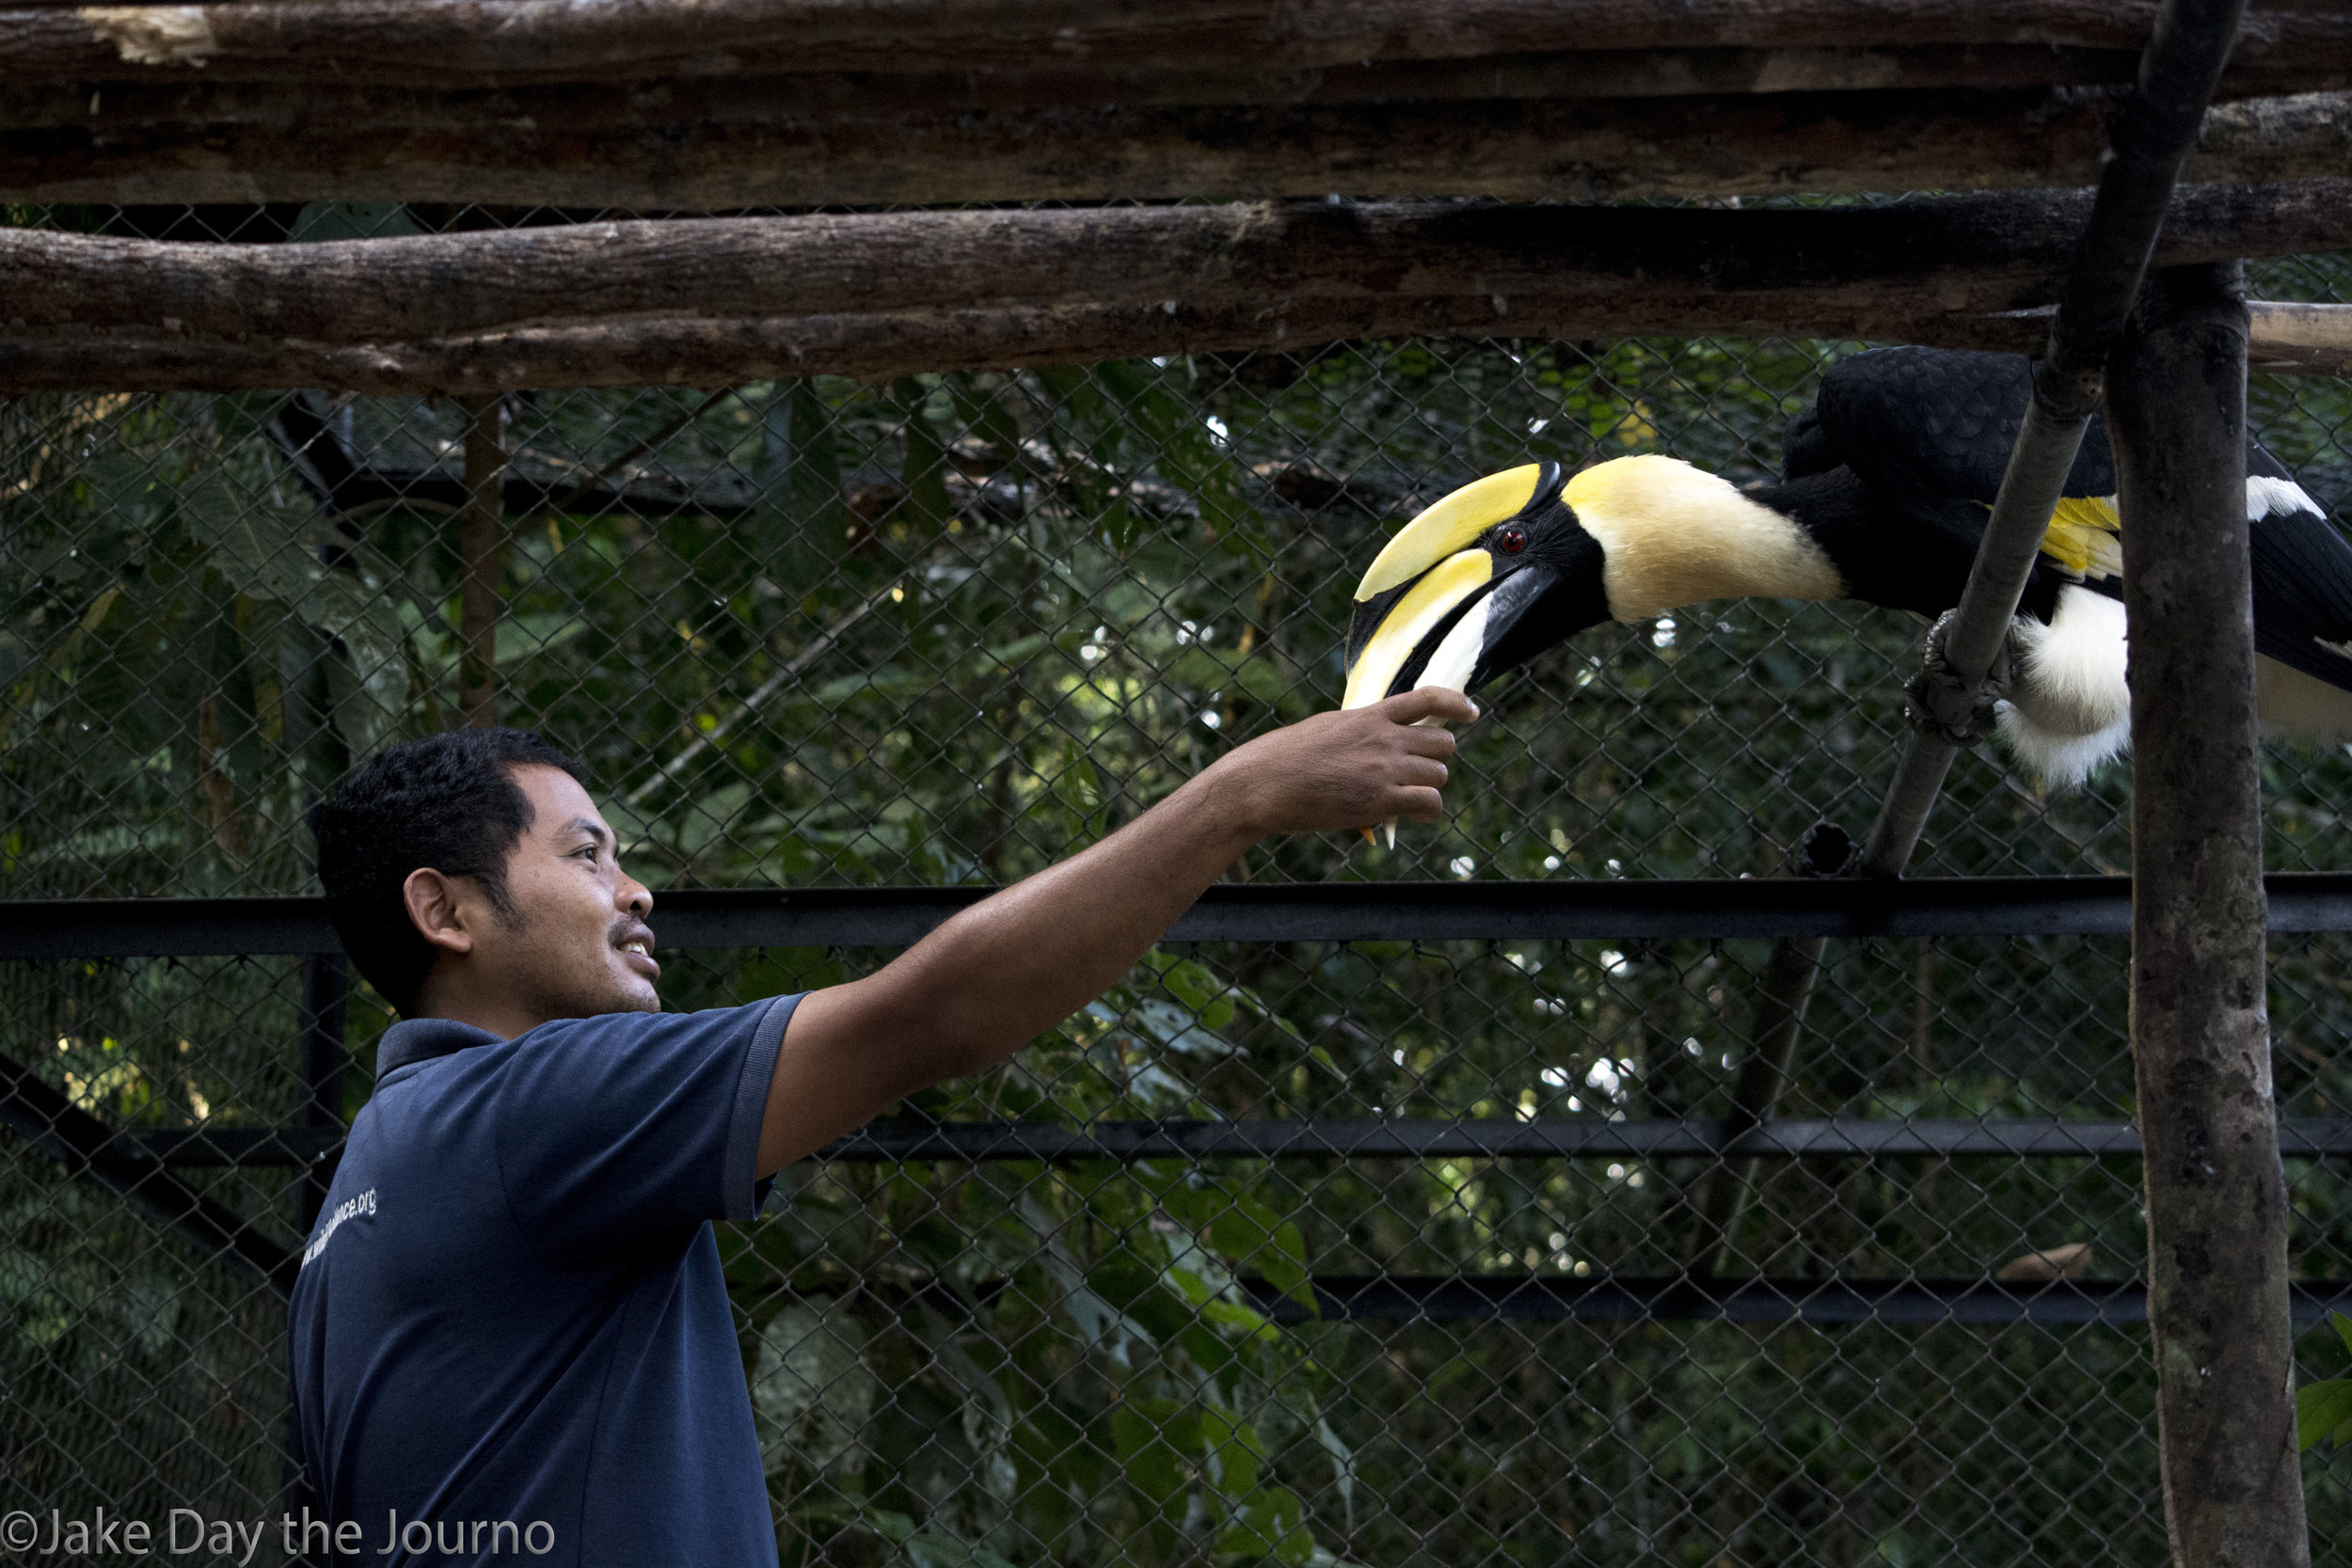 Wildlife keeper Seoun Chhean pats a Hornbill during the morning feeding session at Wildlife Alliance's Cardamom Mountains Release Centre on 09/01/2018 by Jake Day. The wildlife keepers live on site at the release centre and their work helps to support their families who live in the local villages.